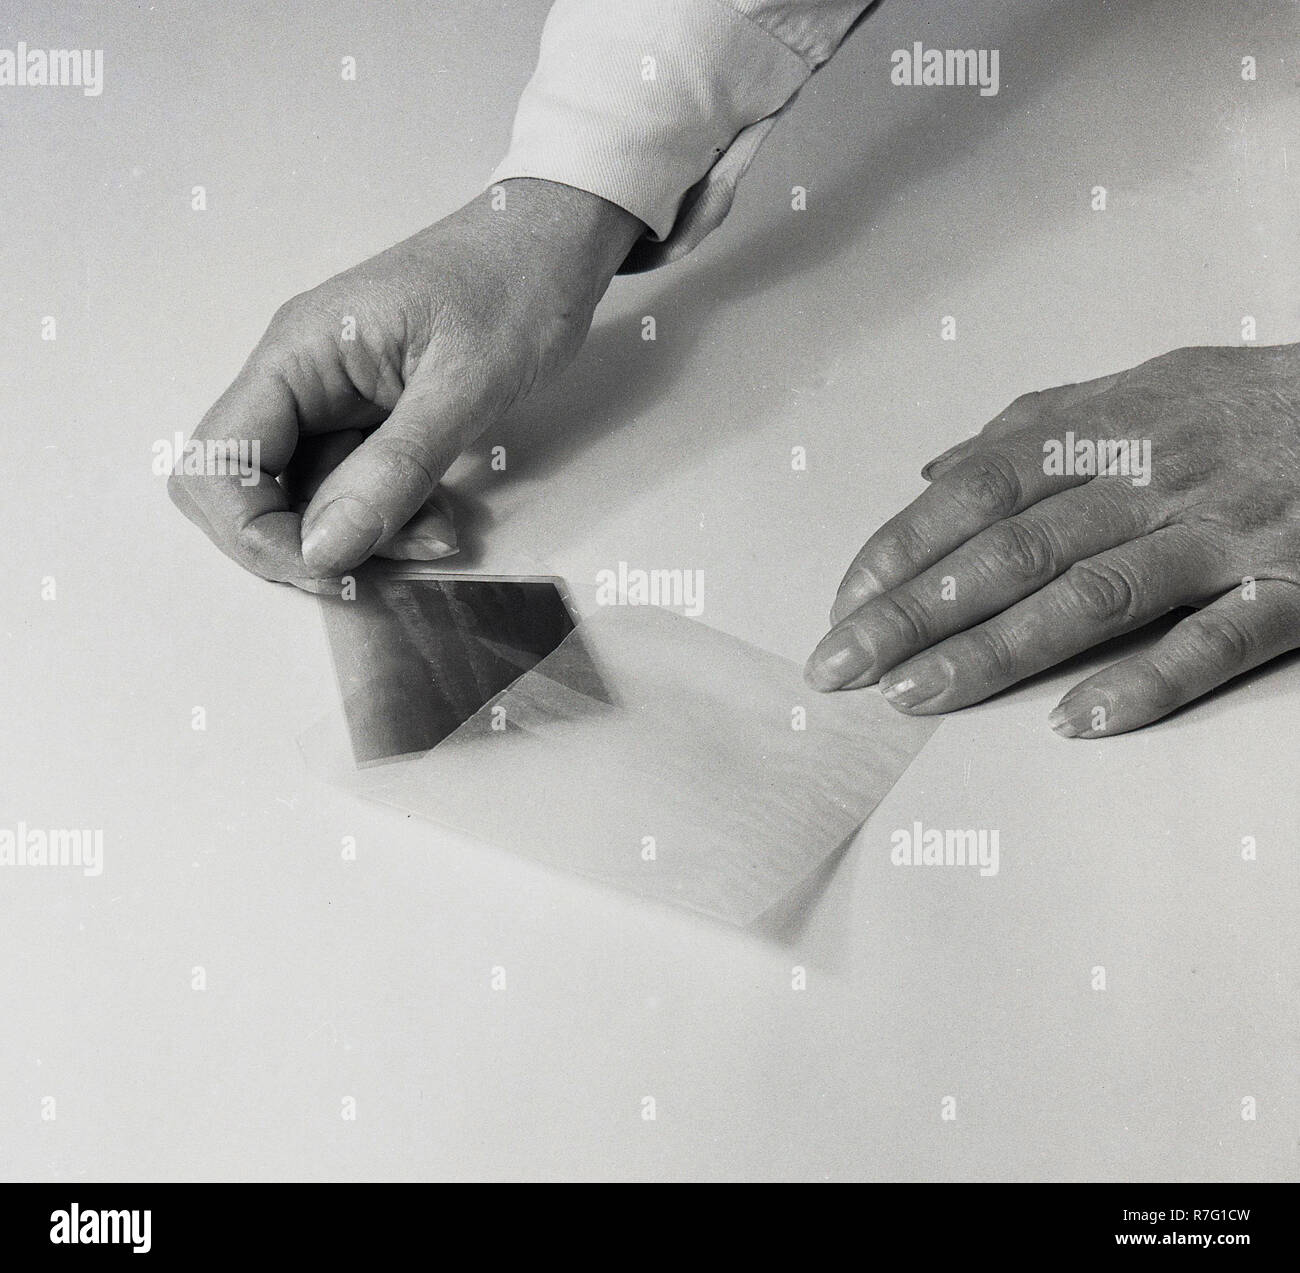 1950s, film photography, putting a photographic film negative in its own individual paper wallet - Stock Image